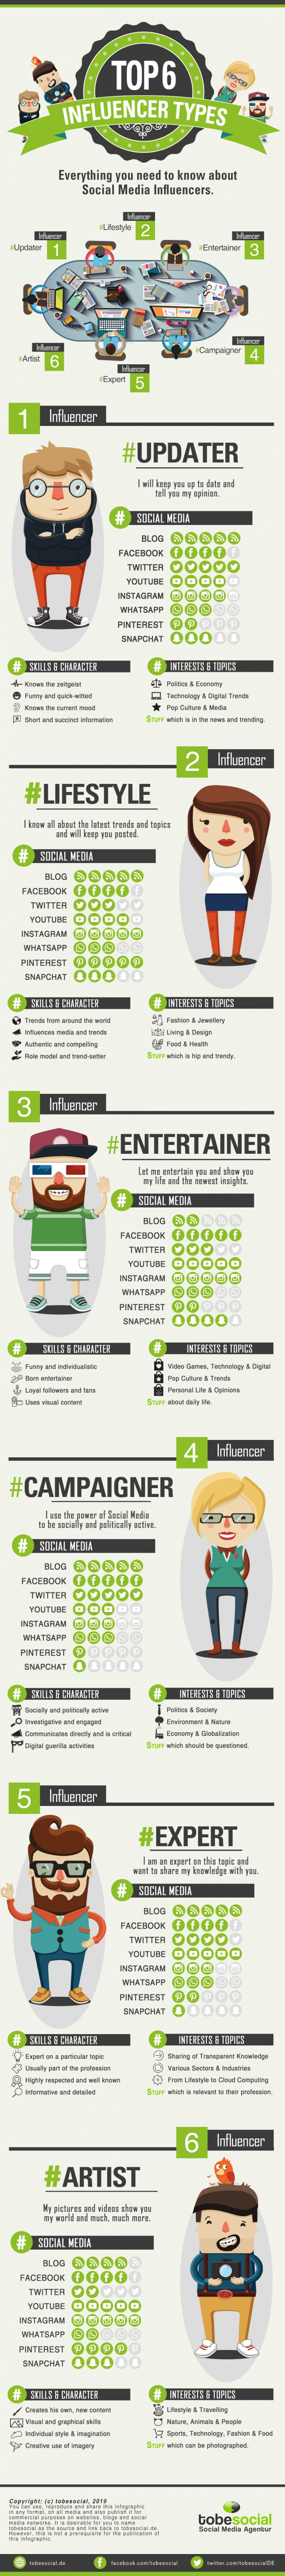 Infografik zum Influencer Marketing – 6 Social Media Influencer Typen